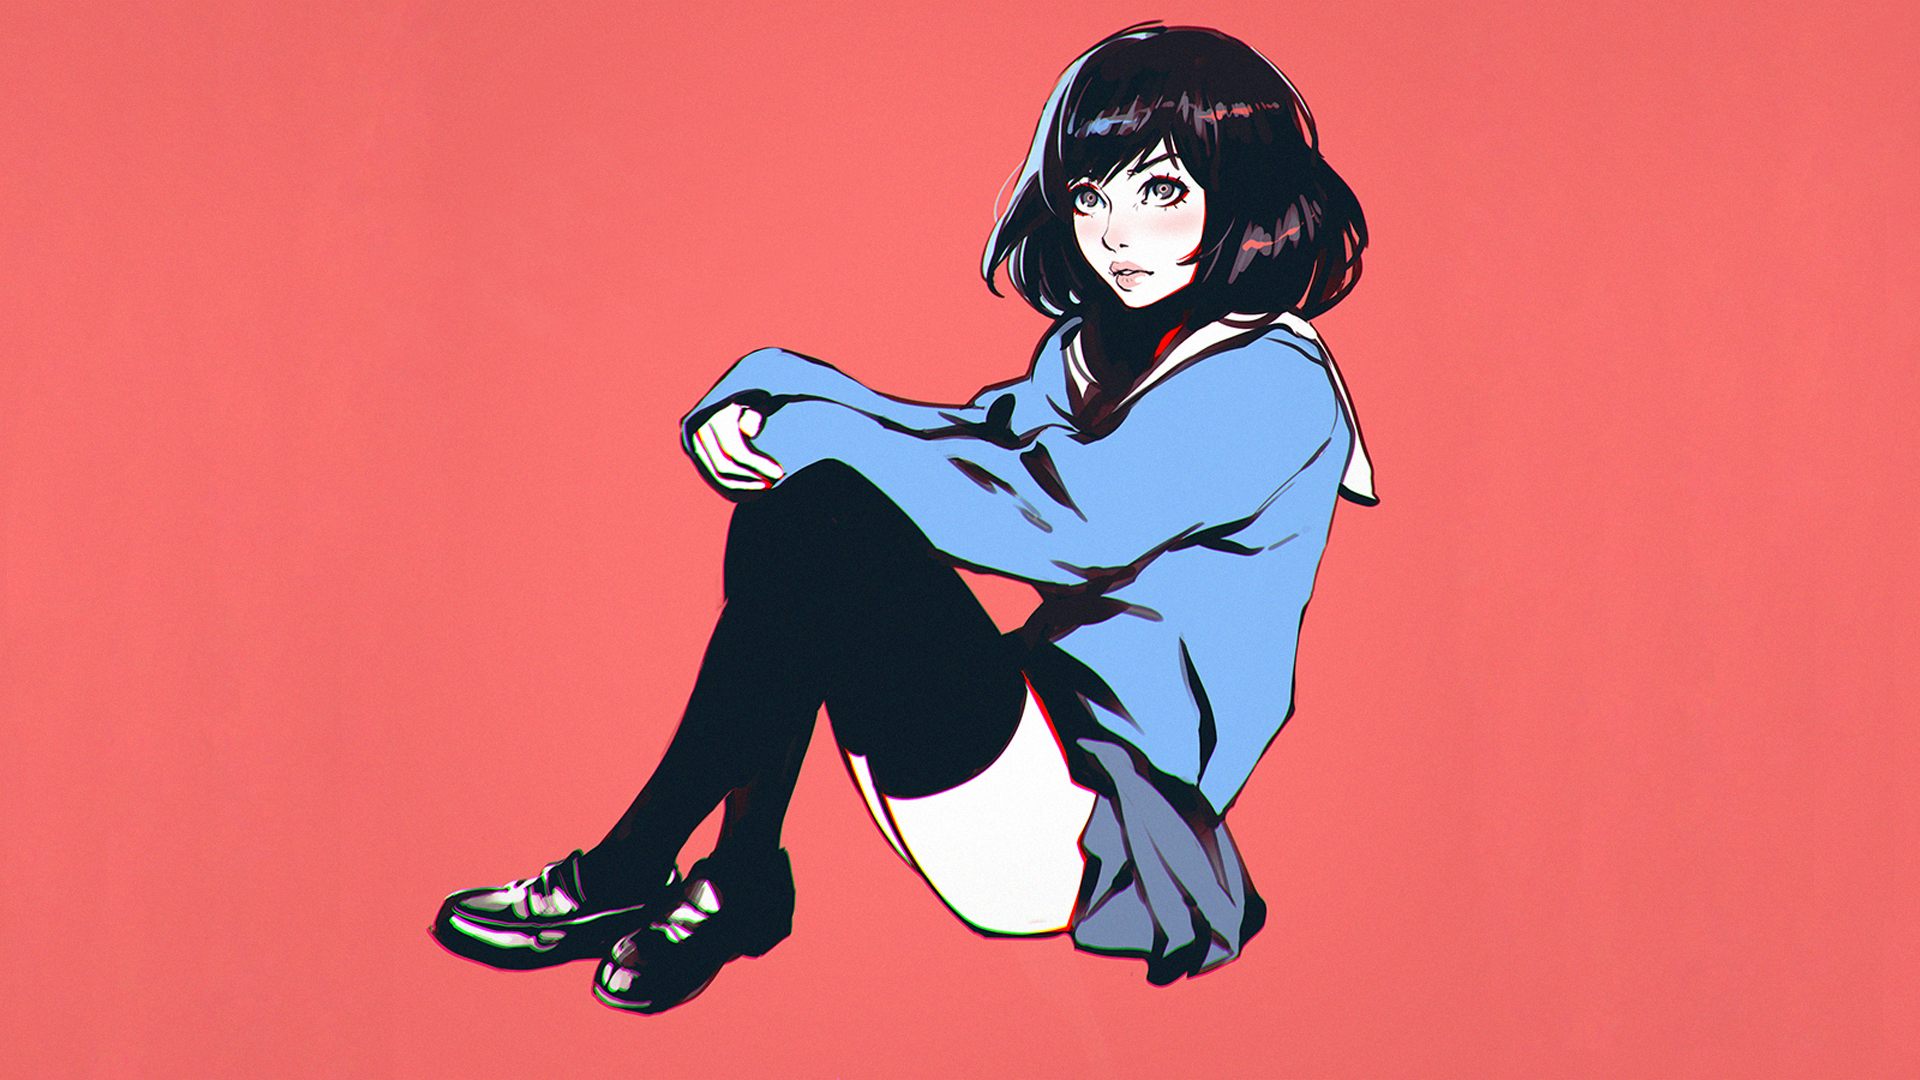 General 1920x1080 Ilya Kuvshinov drawing artwork simple background short hair women knee-highs school uniform